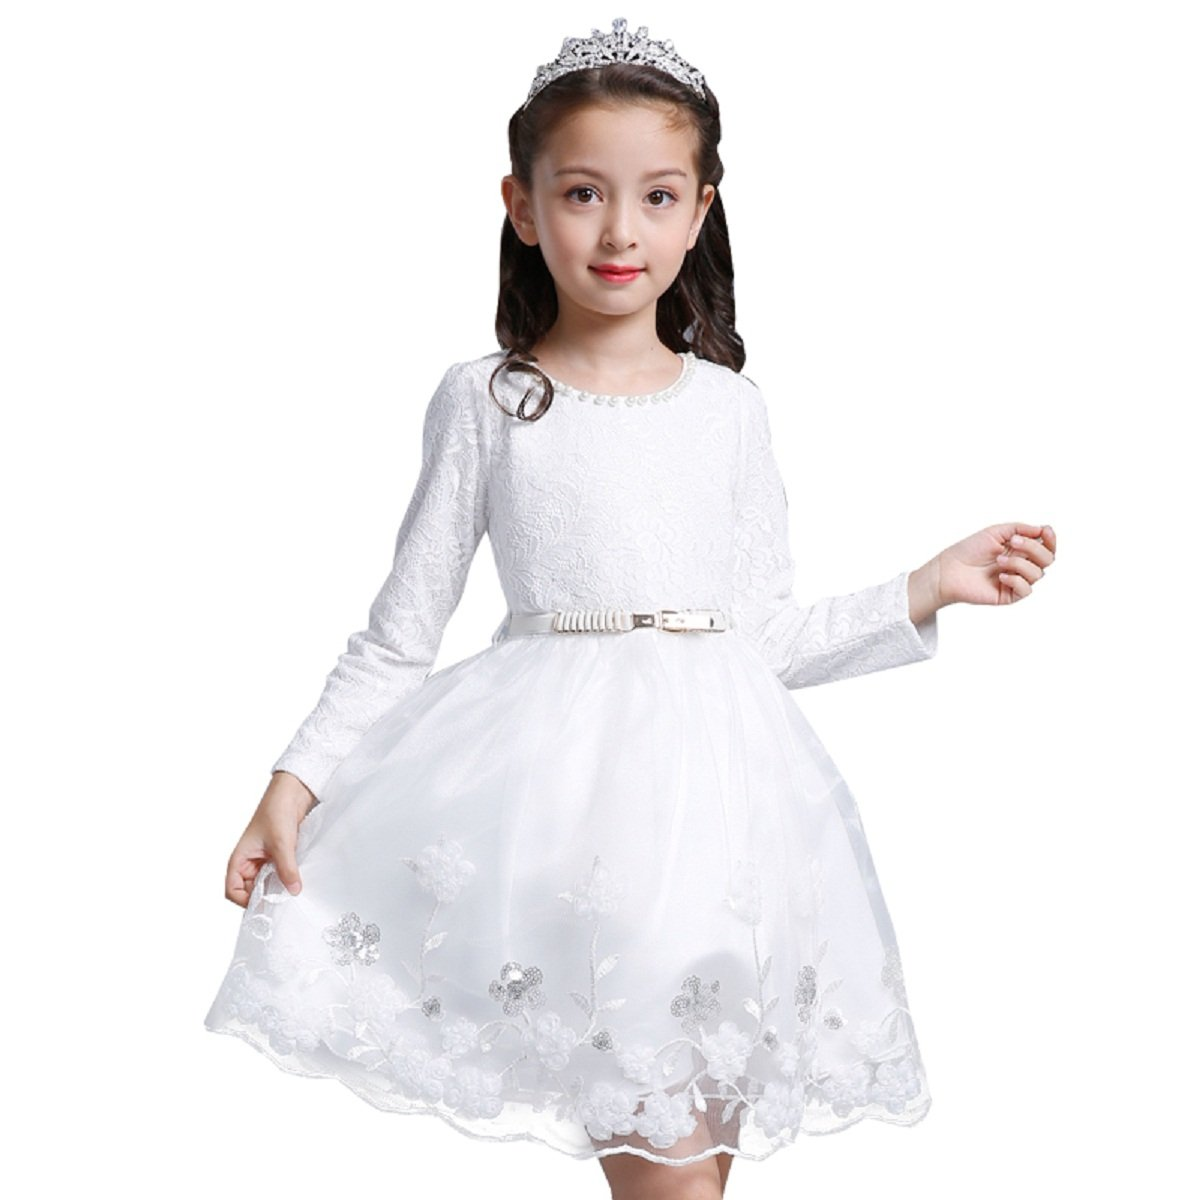 dcd0dd351c Top 10 wholesale 3 Year Old Baby Girl Dresses - Chinabrands.com